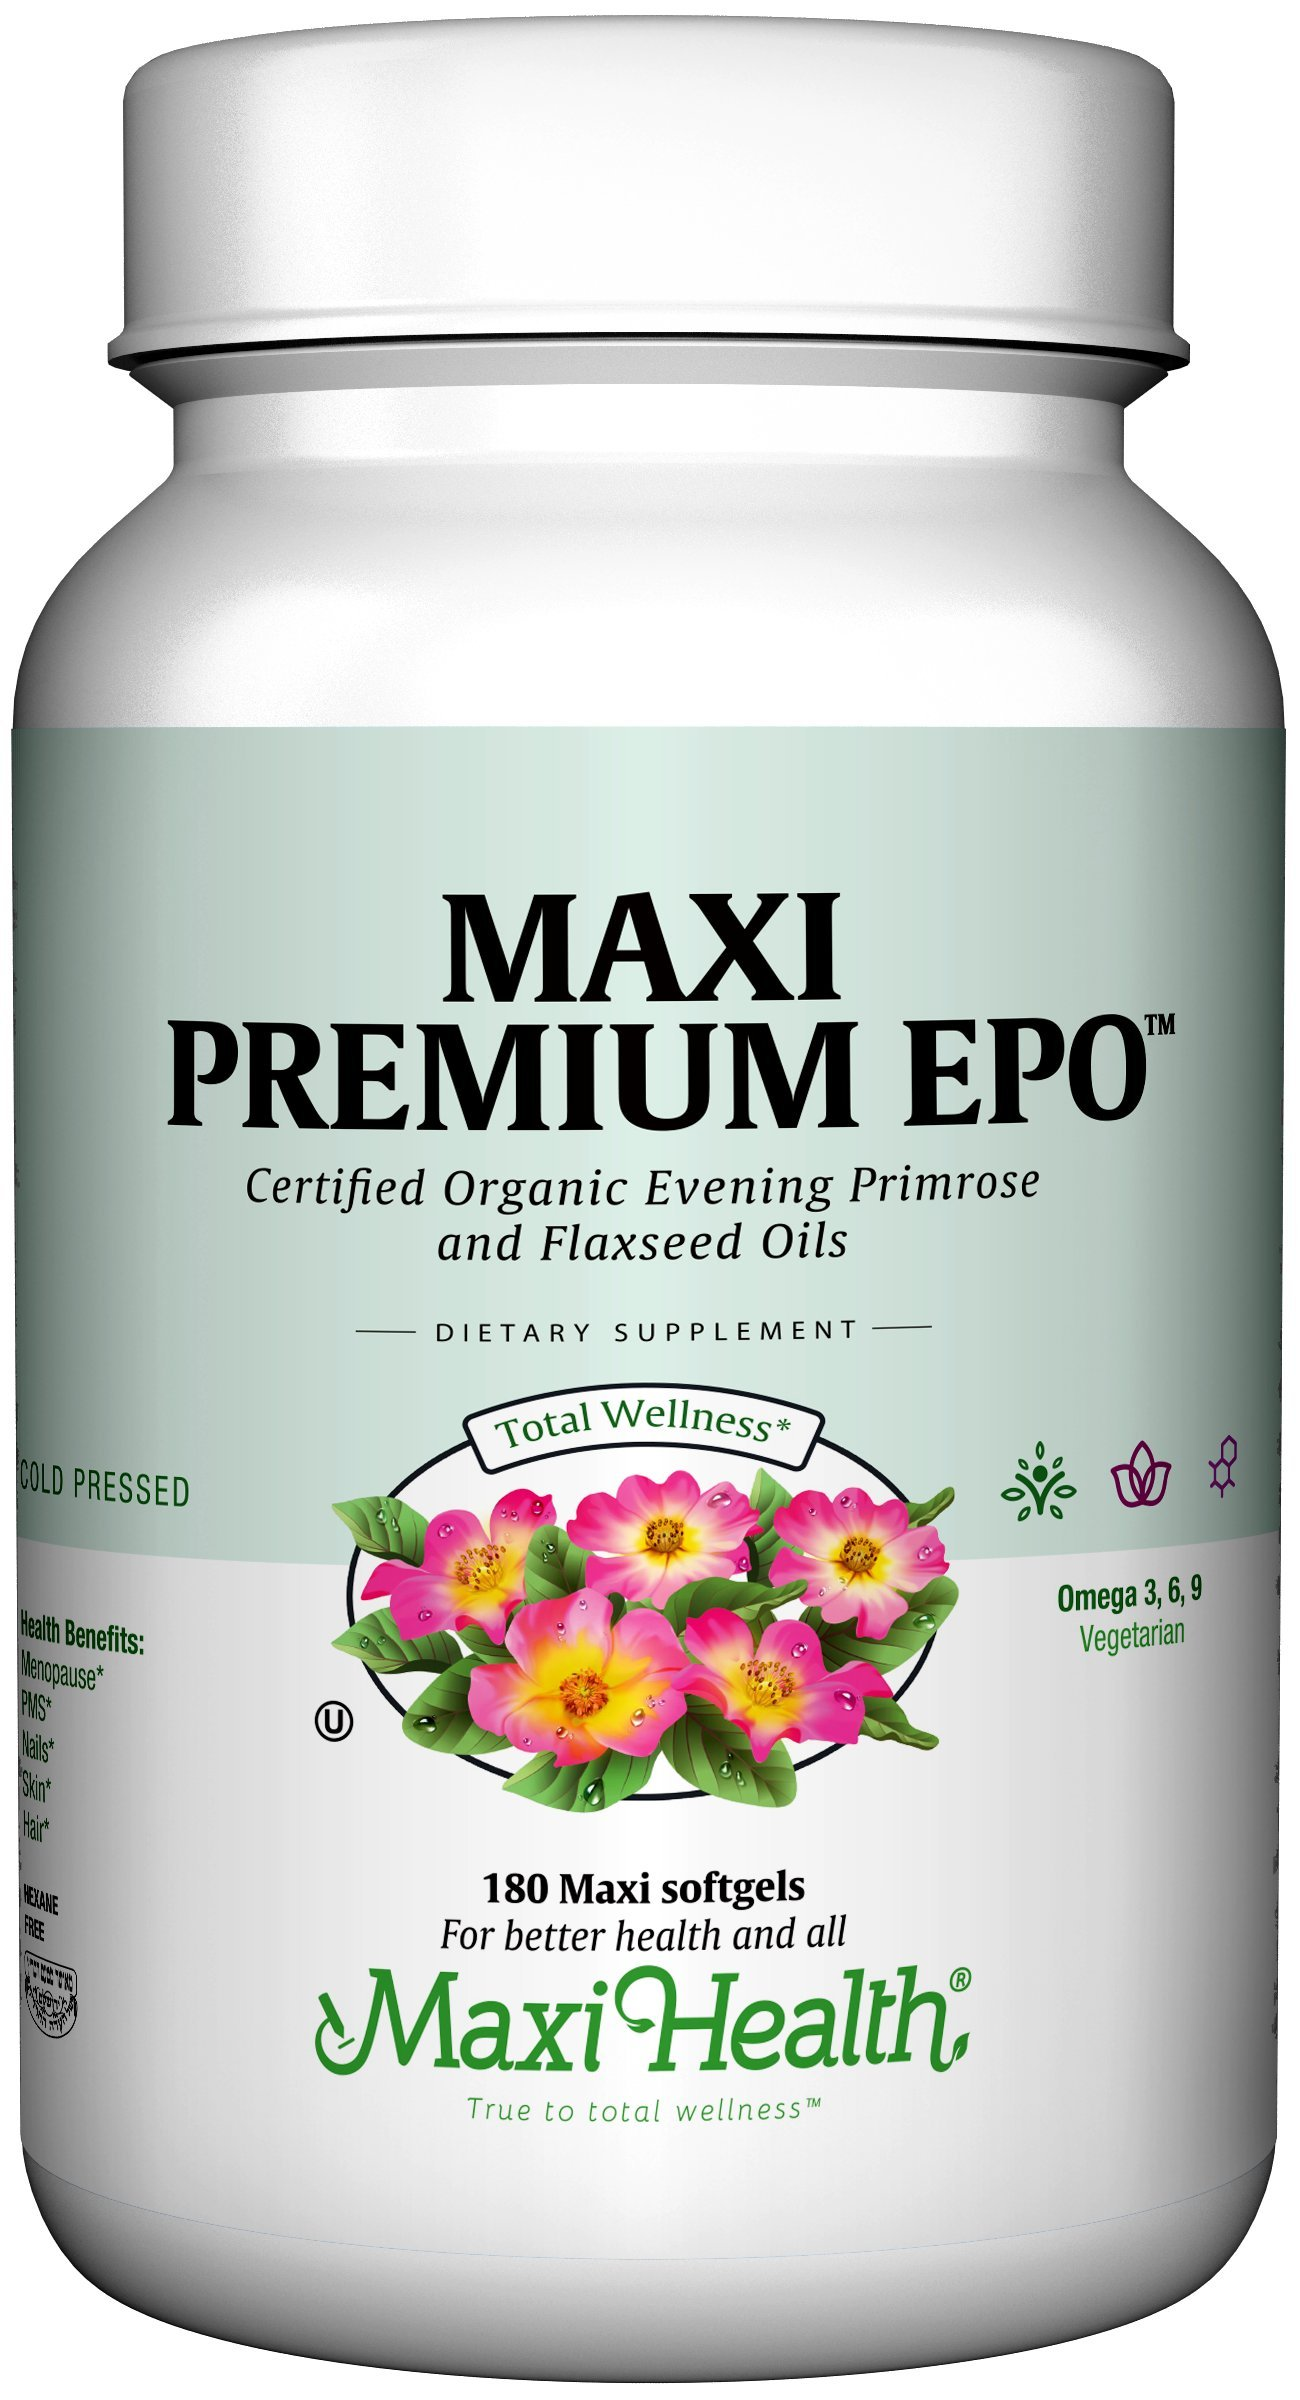 Maxi Health Premium EPO - Evening Primrose with Flax Seed Oil - with Omega-3-180 Softgels - Kosher